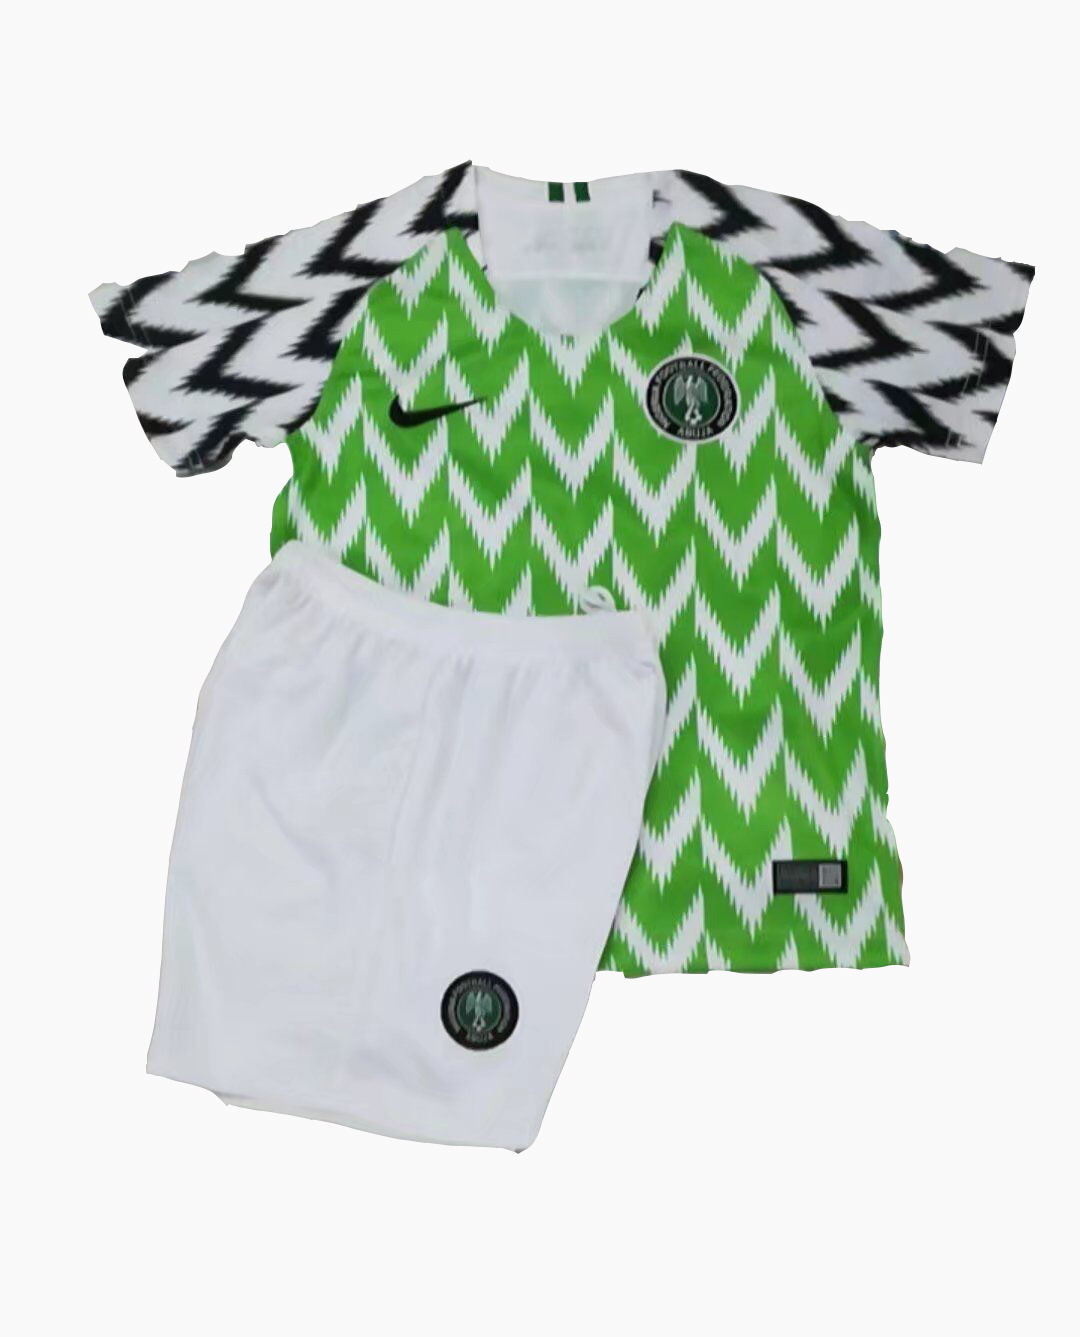 Nigeria 2018 FIFA World Cup Home Kids Soccer Kit Children Shirt And Shorts d2823a534